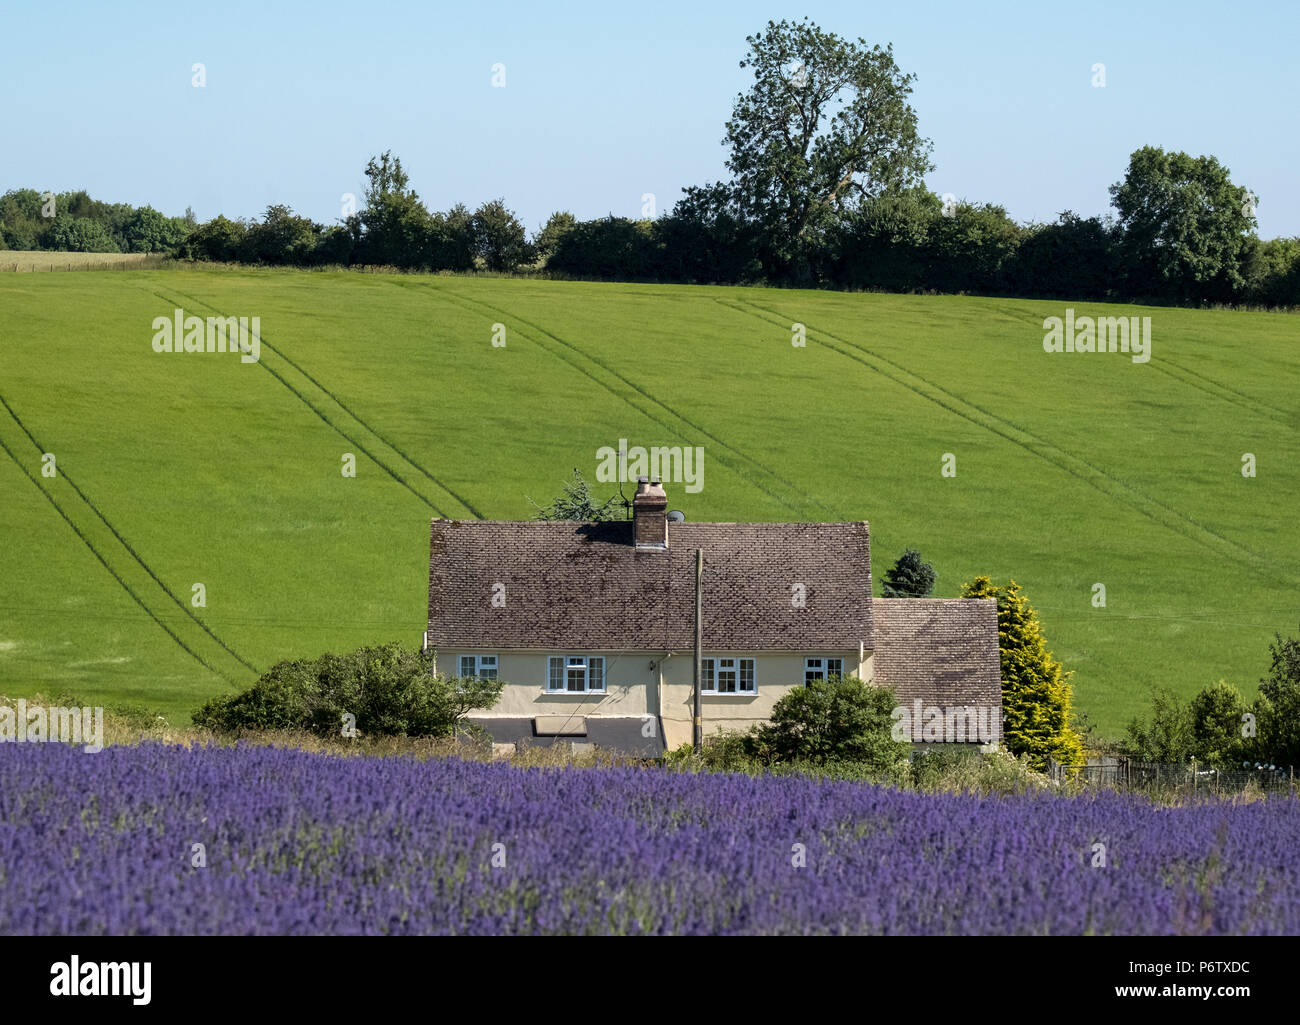 Rural Landscape With White House Overlooking Lavender Fields On A